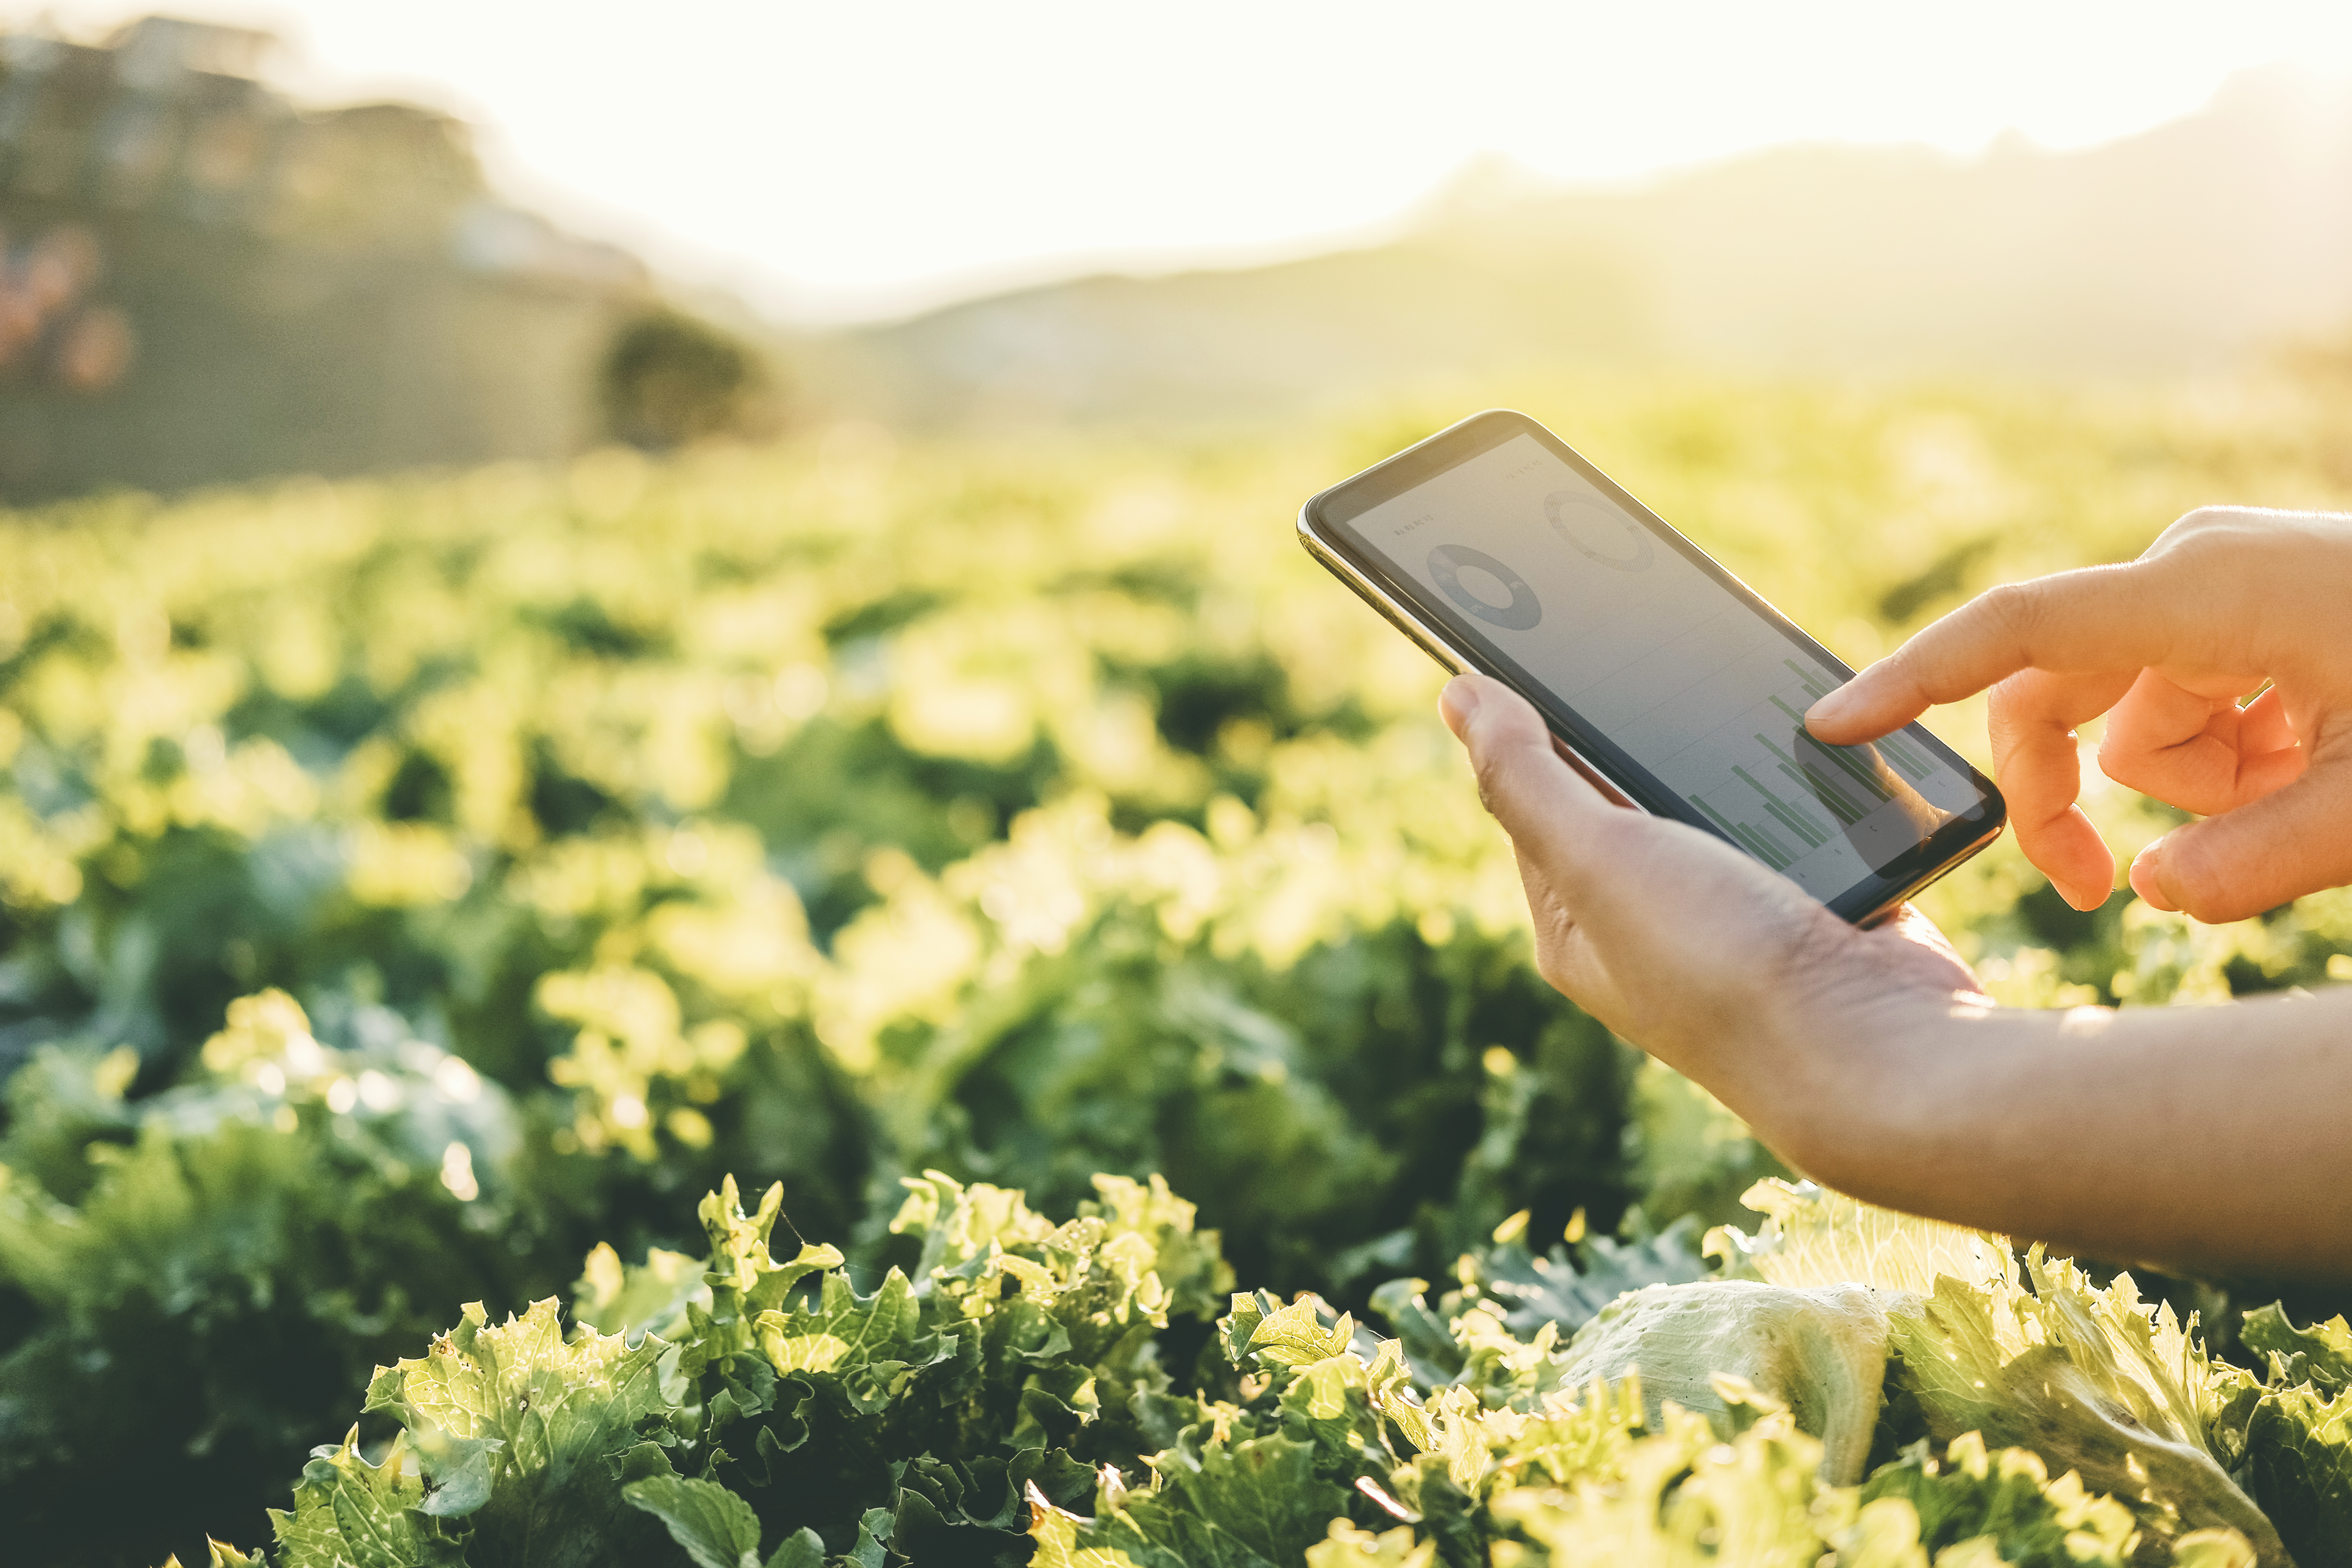 A hand holding a mobile telephone in a crop field